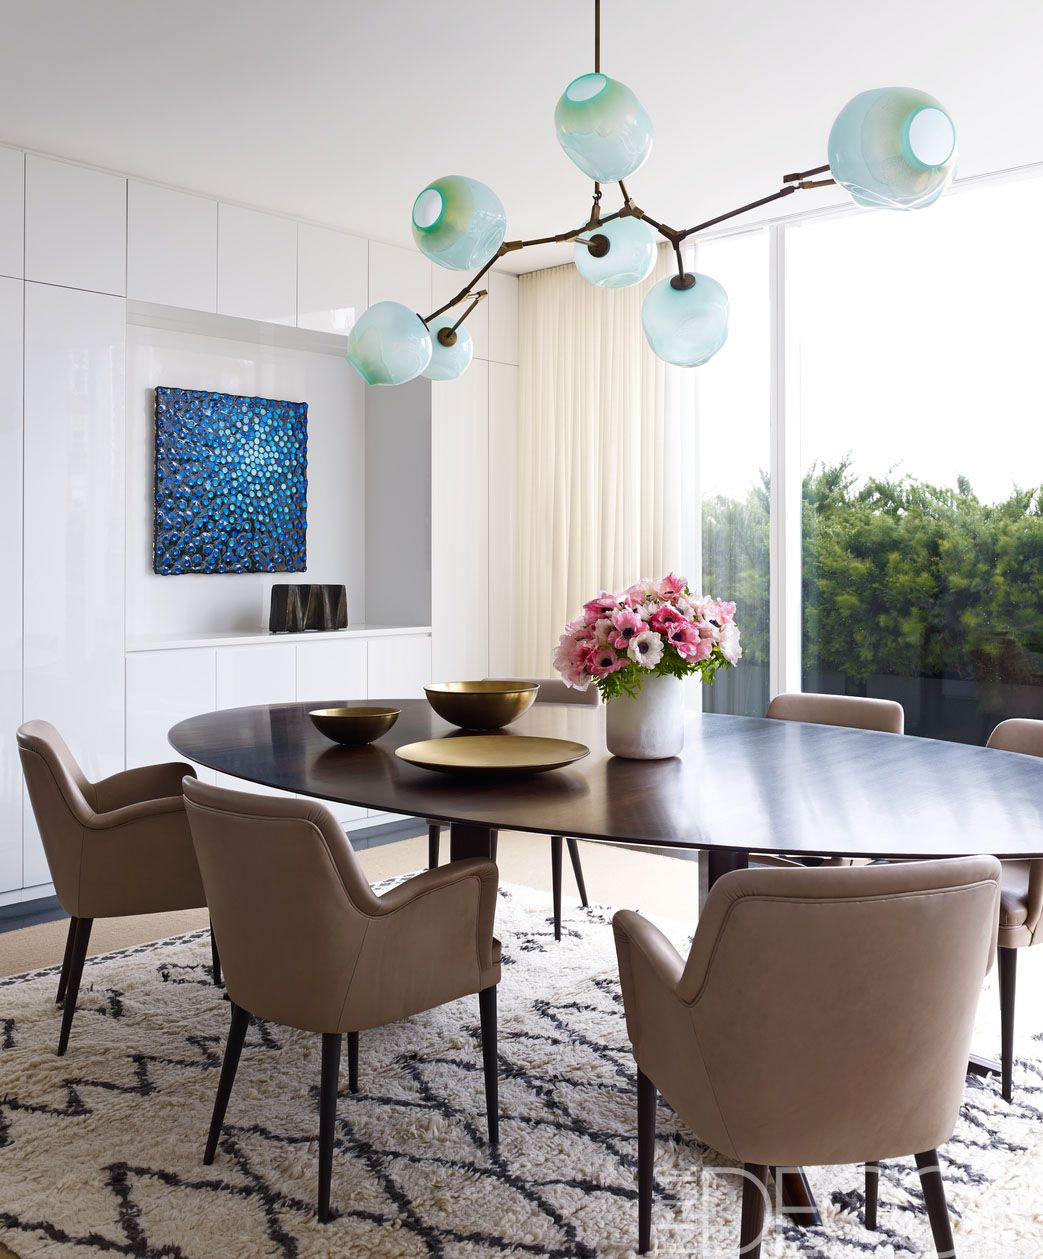 25 Modern Dining Room Decorating Ideas   Contemporary Dining Room Furniture. 25 Modern Dining Room Decorating Ideas   Contemporary Dining Room